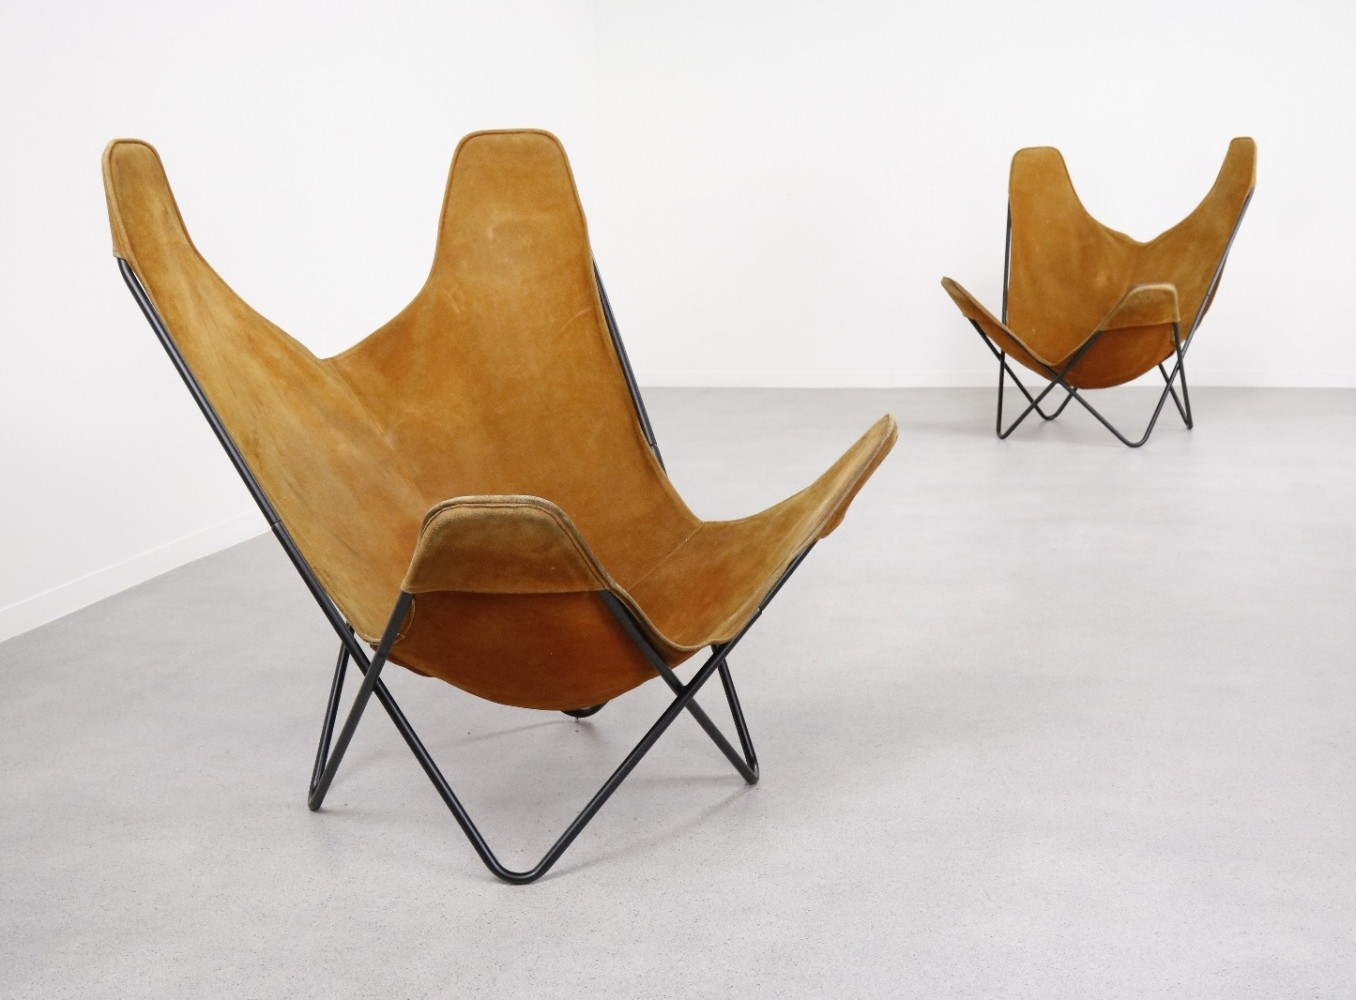 2 x Butterfly lounge chair by Jorge Ferrari Hardoy for Knoll International, 1970s